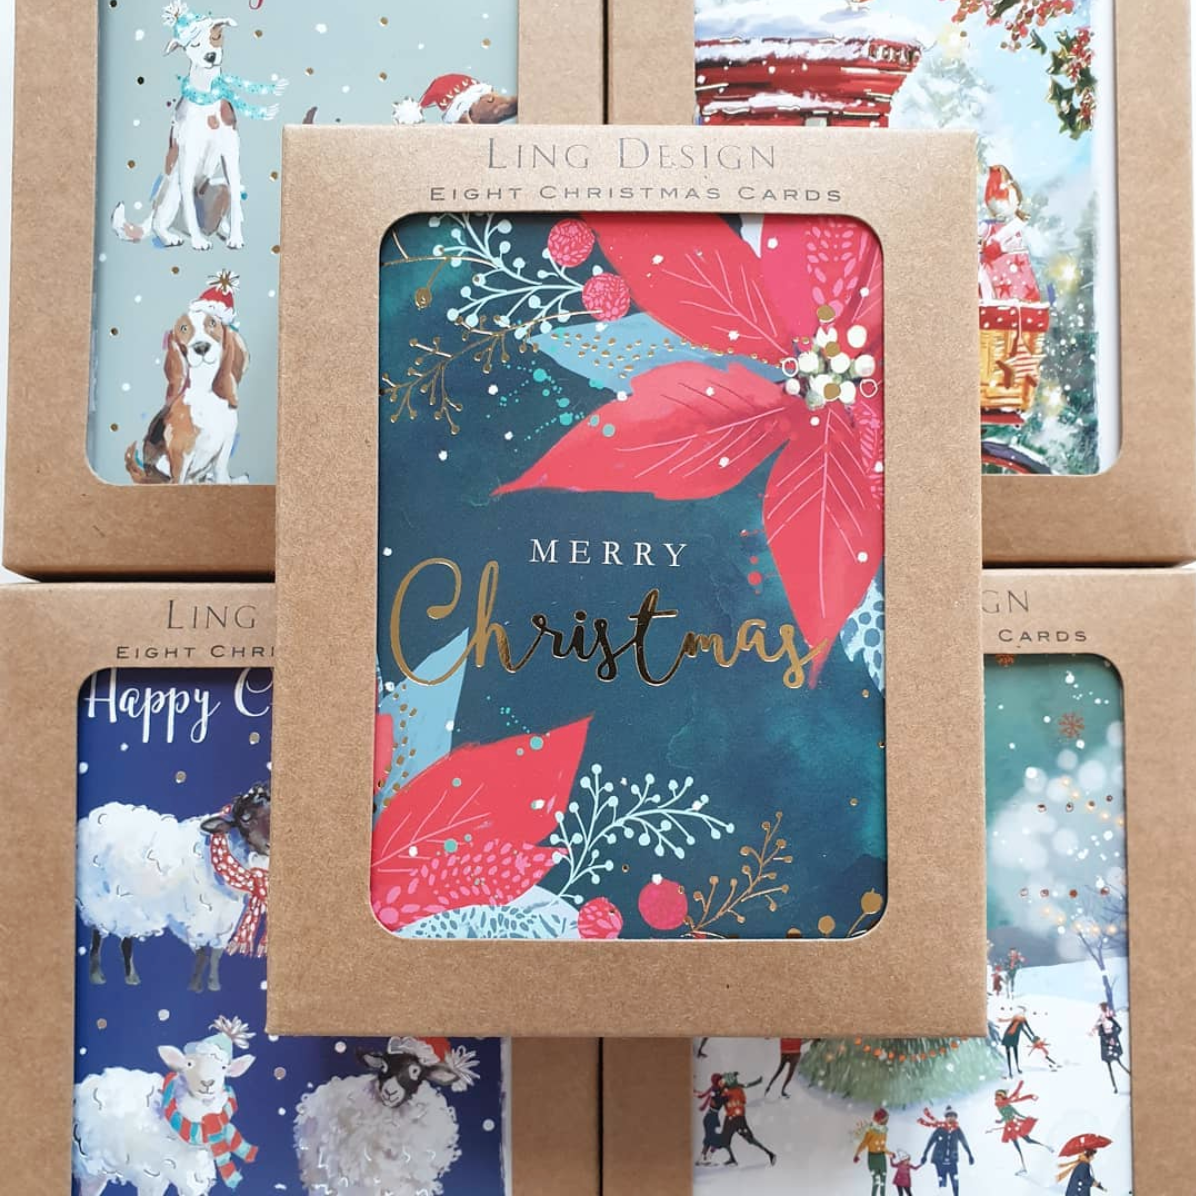 Above: For Christmas 2020 GBCC/Ling has made changes to its boxed cards, saving 3.5 tonnes of plastic without compromising on product quality.